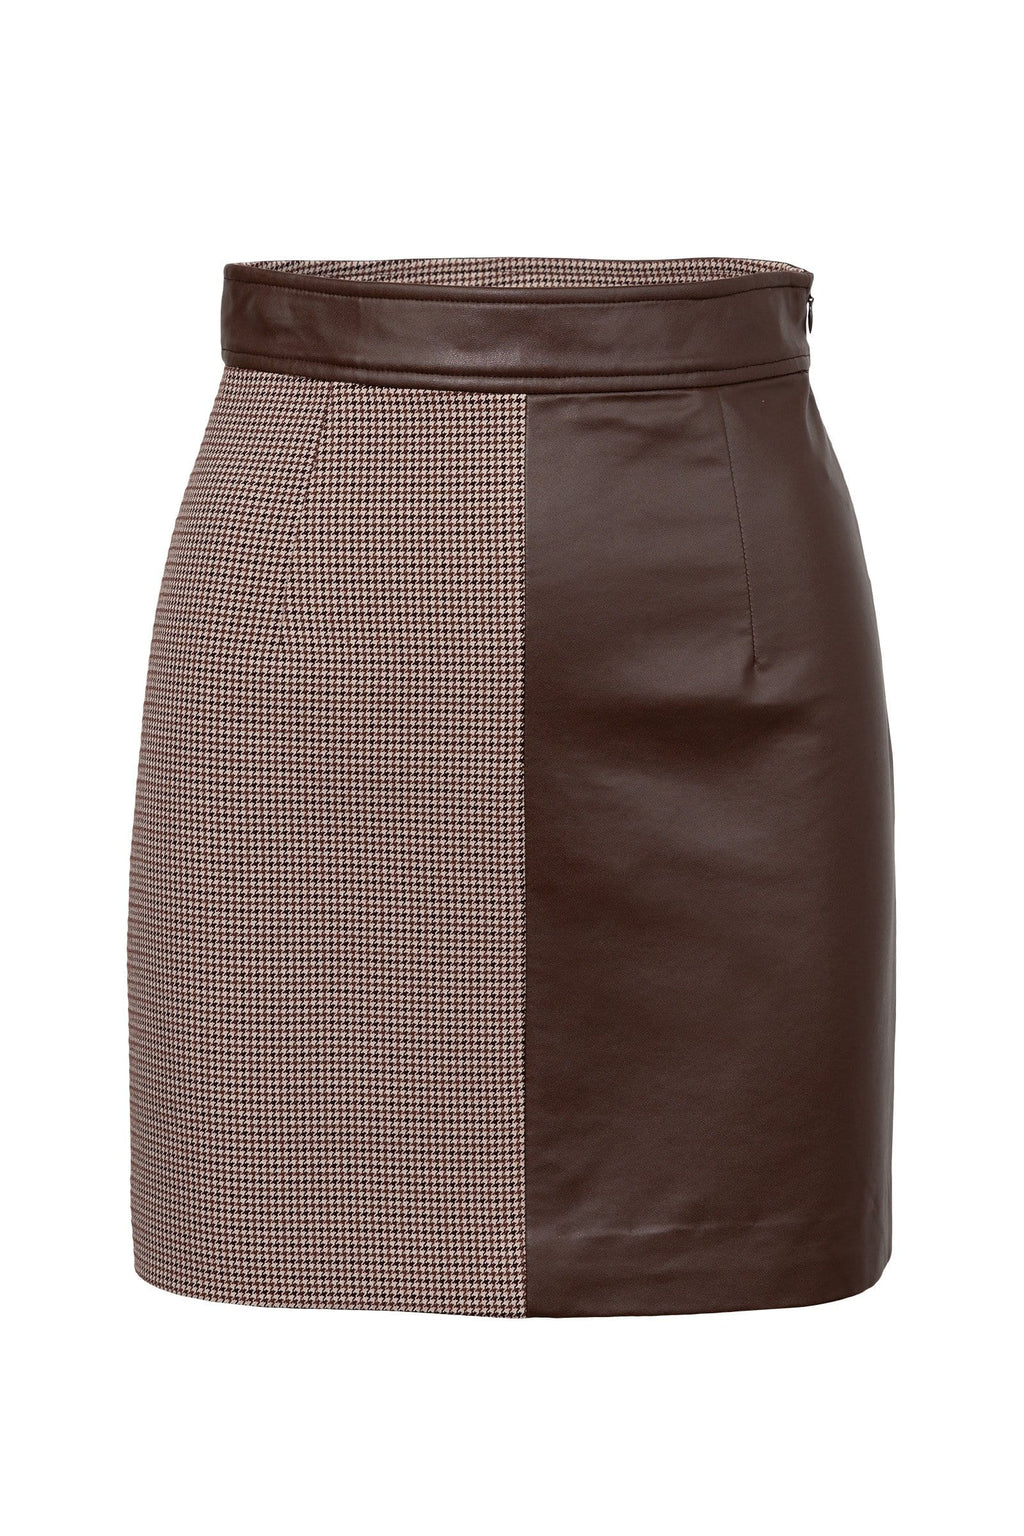 Cedar Brown Two-Toned Skirt